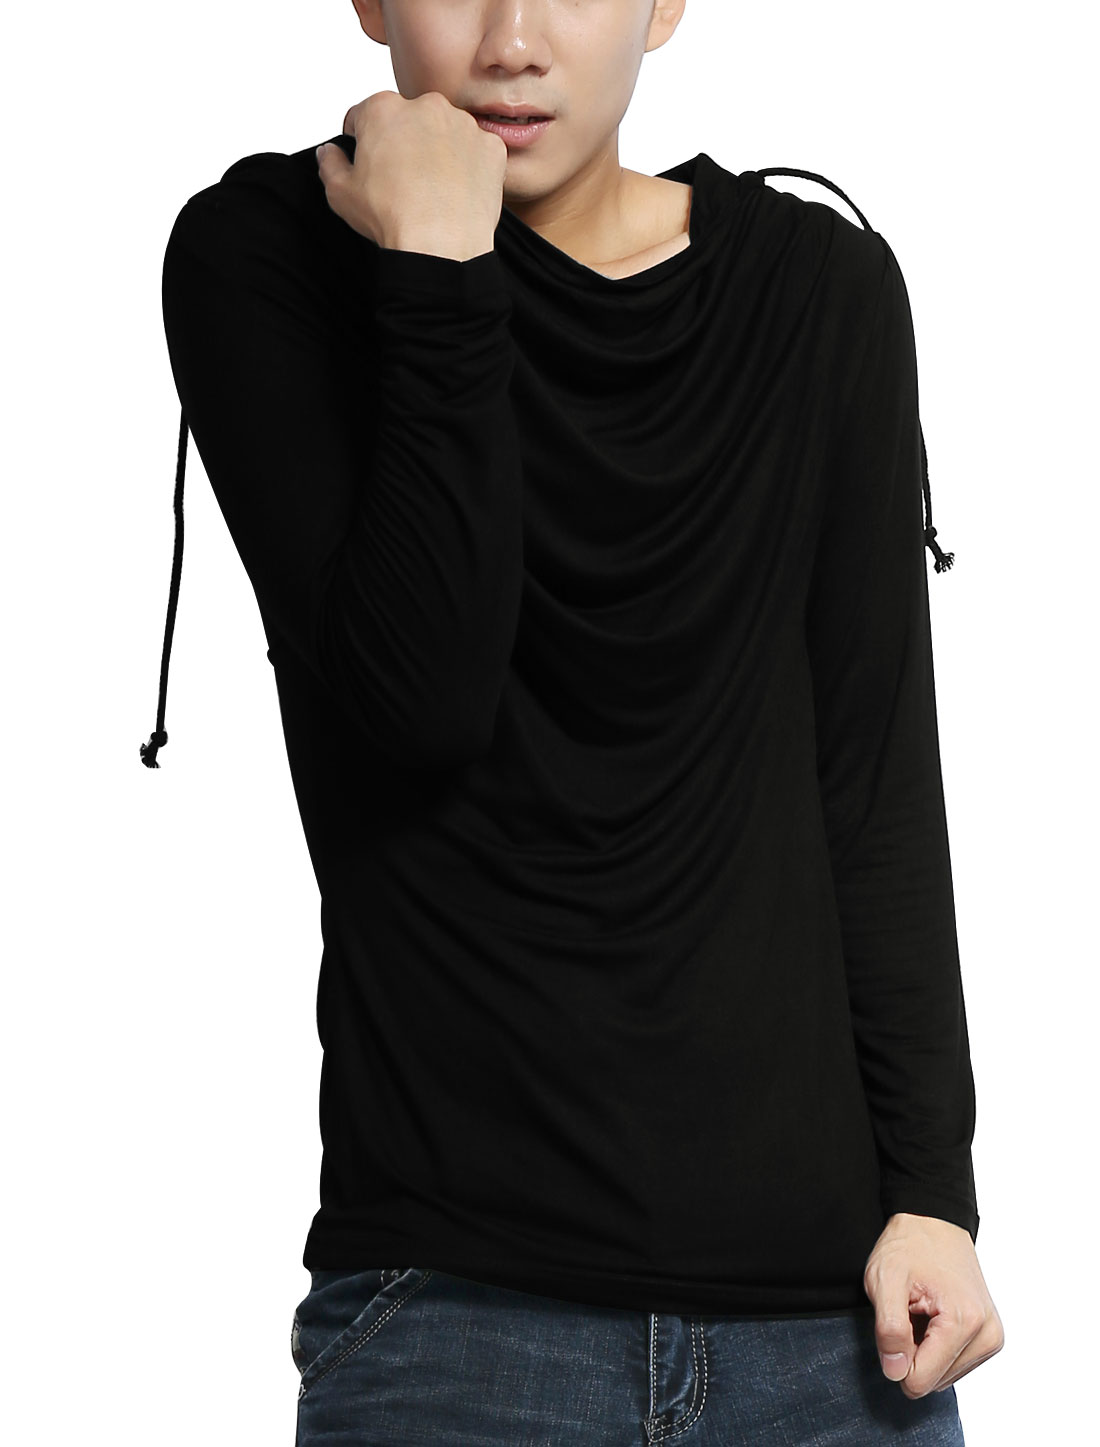 Mens Fashion Cowl Neck Hoody Hooded Casual T-shirt Tee Black S